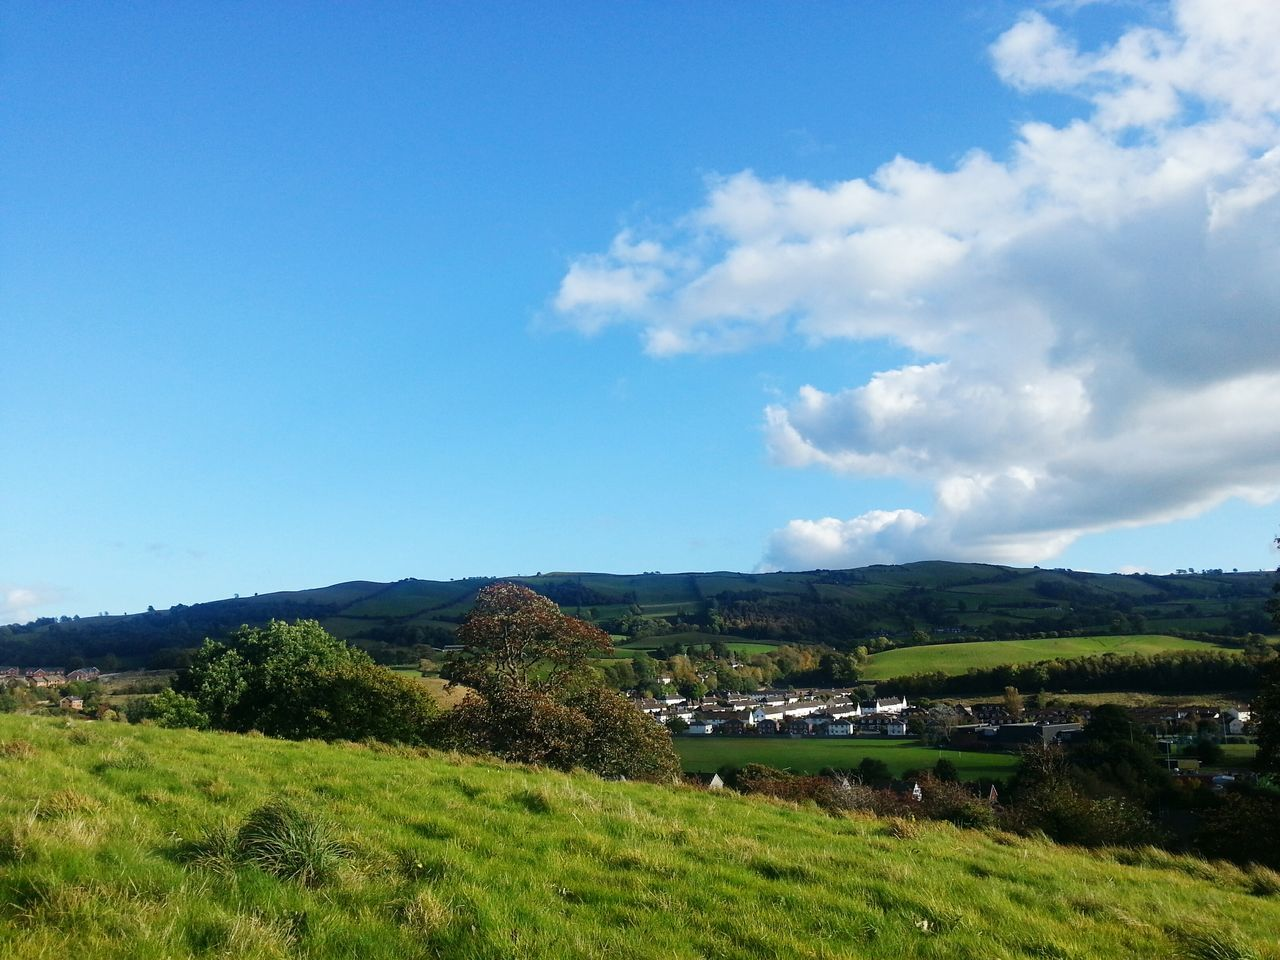 Blue Sky Nature Grass Scenics Landscape Cloud - Sky Outdoors Agriculture Mountain Tree Beauty In Nature No People Day Wales Newtown Powys Hills Britain Green Color Houses